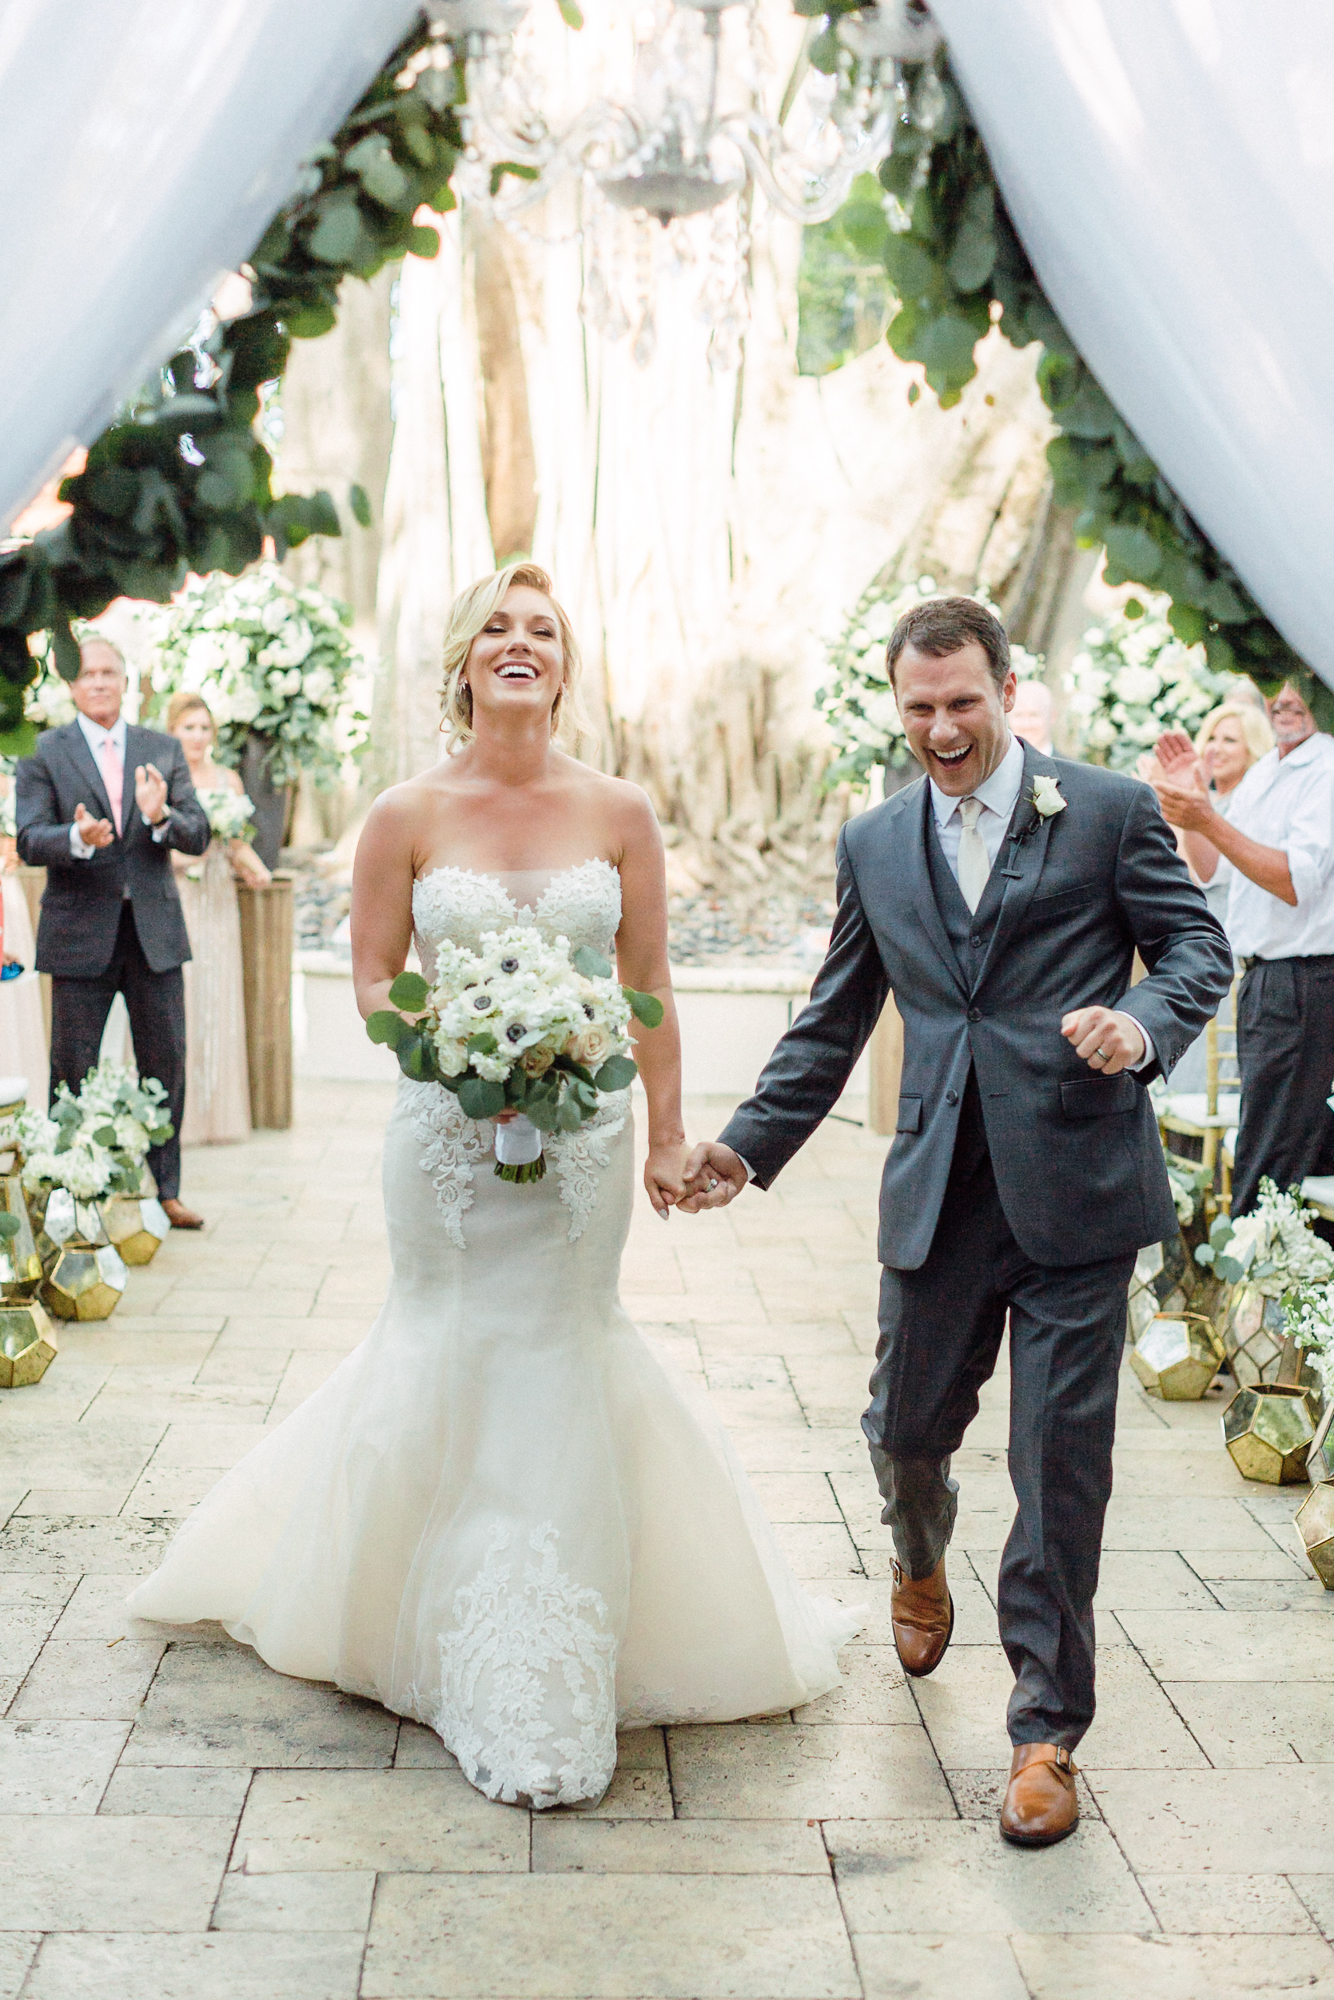 Newlywed couple walk down the aisle in their outdoor ceremony space.